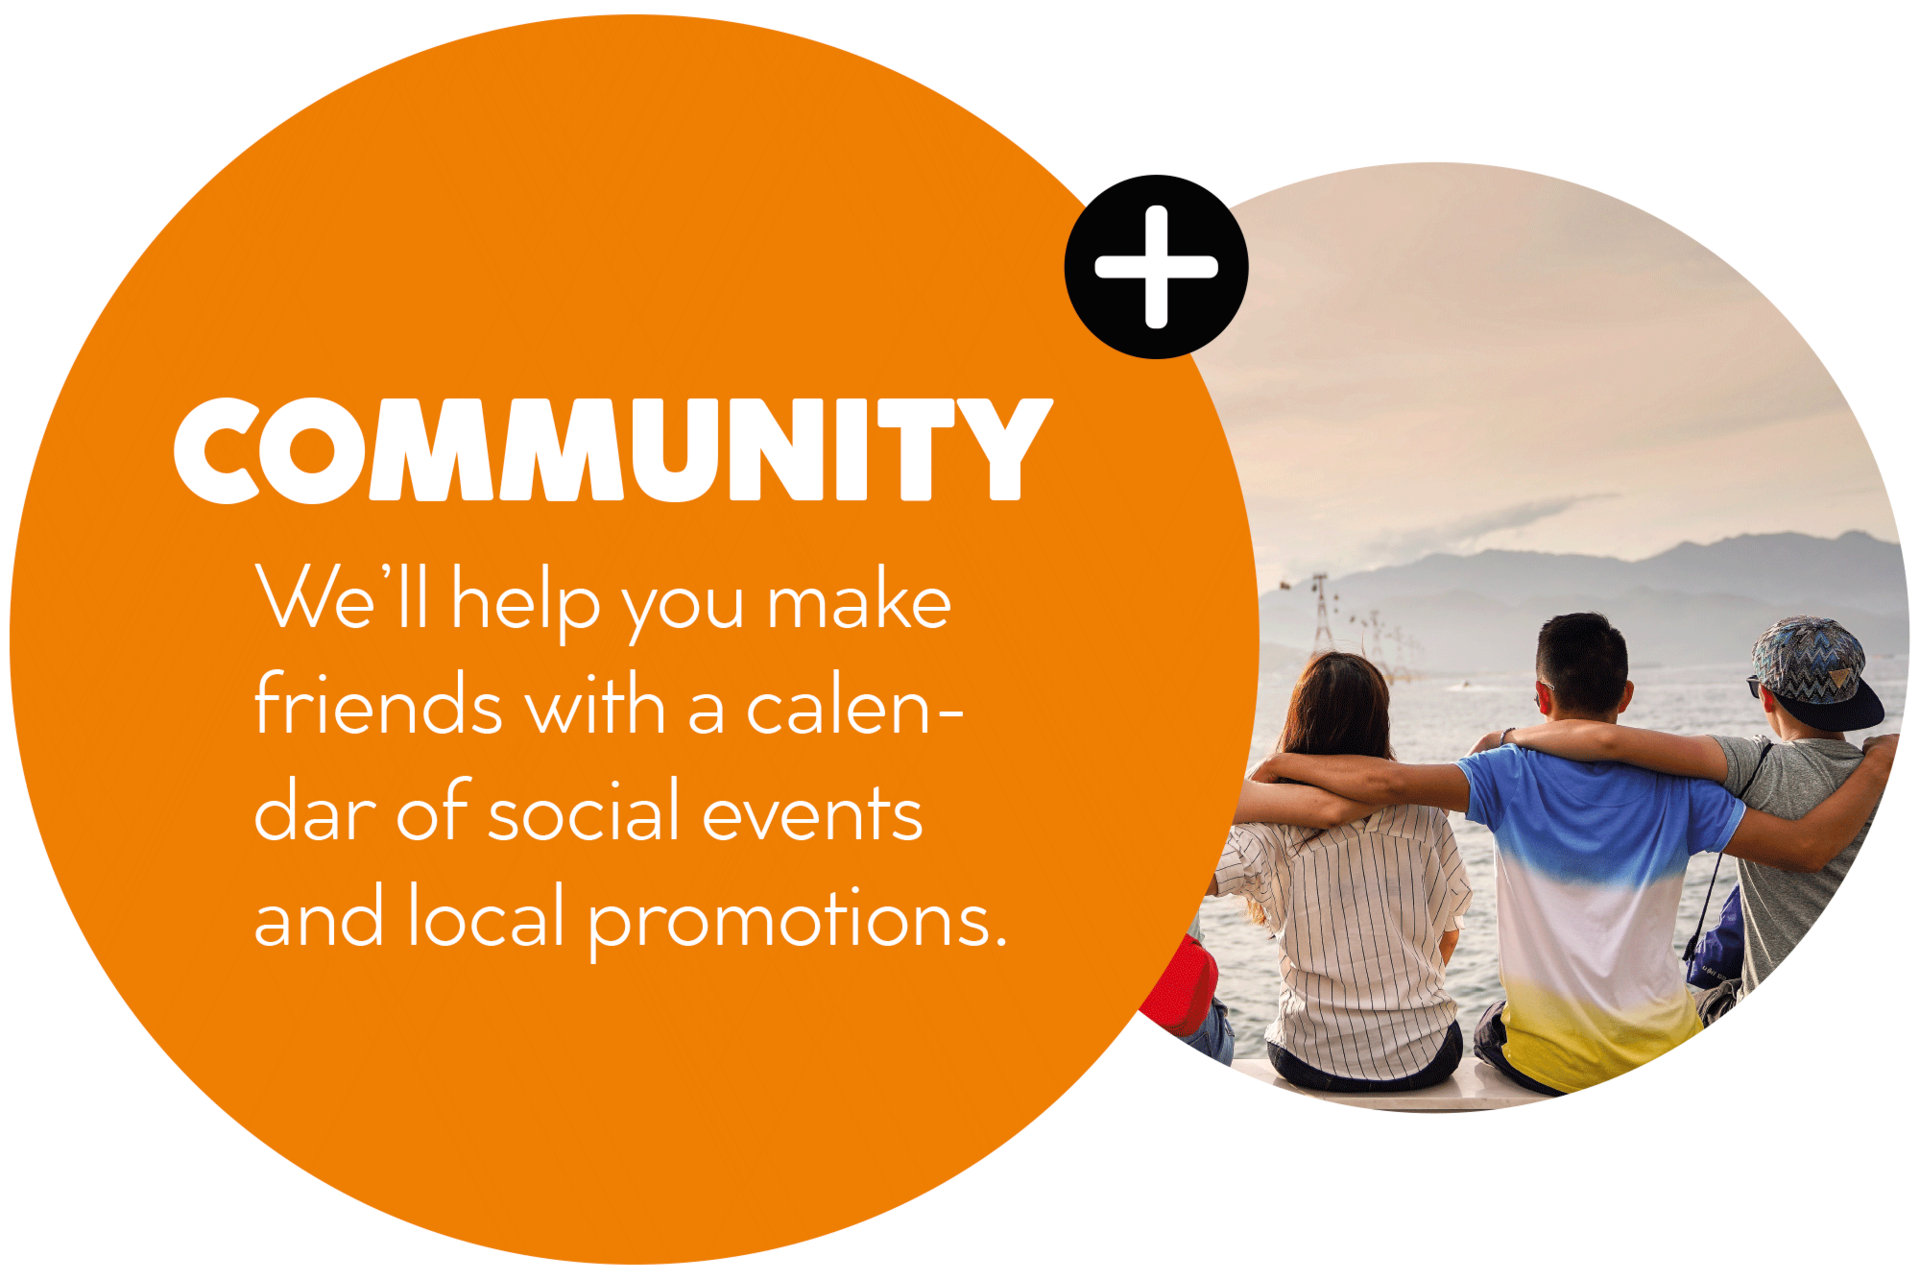 Community - We'll help you make friends with a calendar of social events and local promotions.